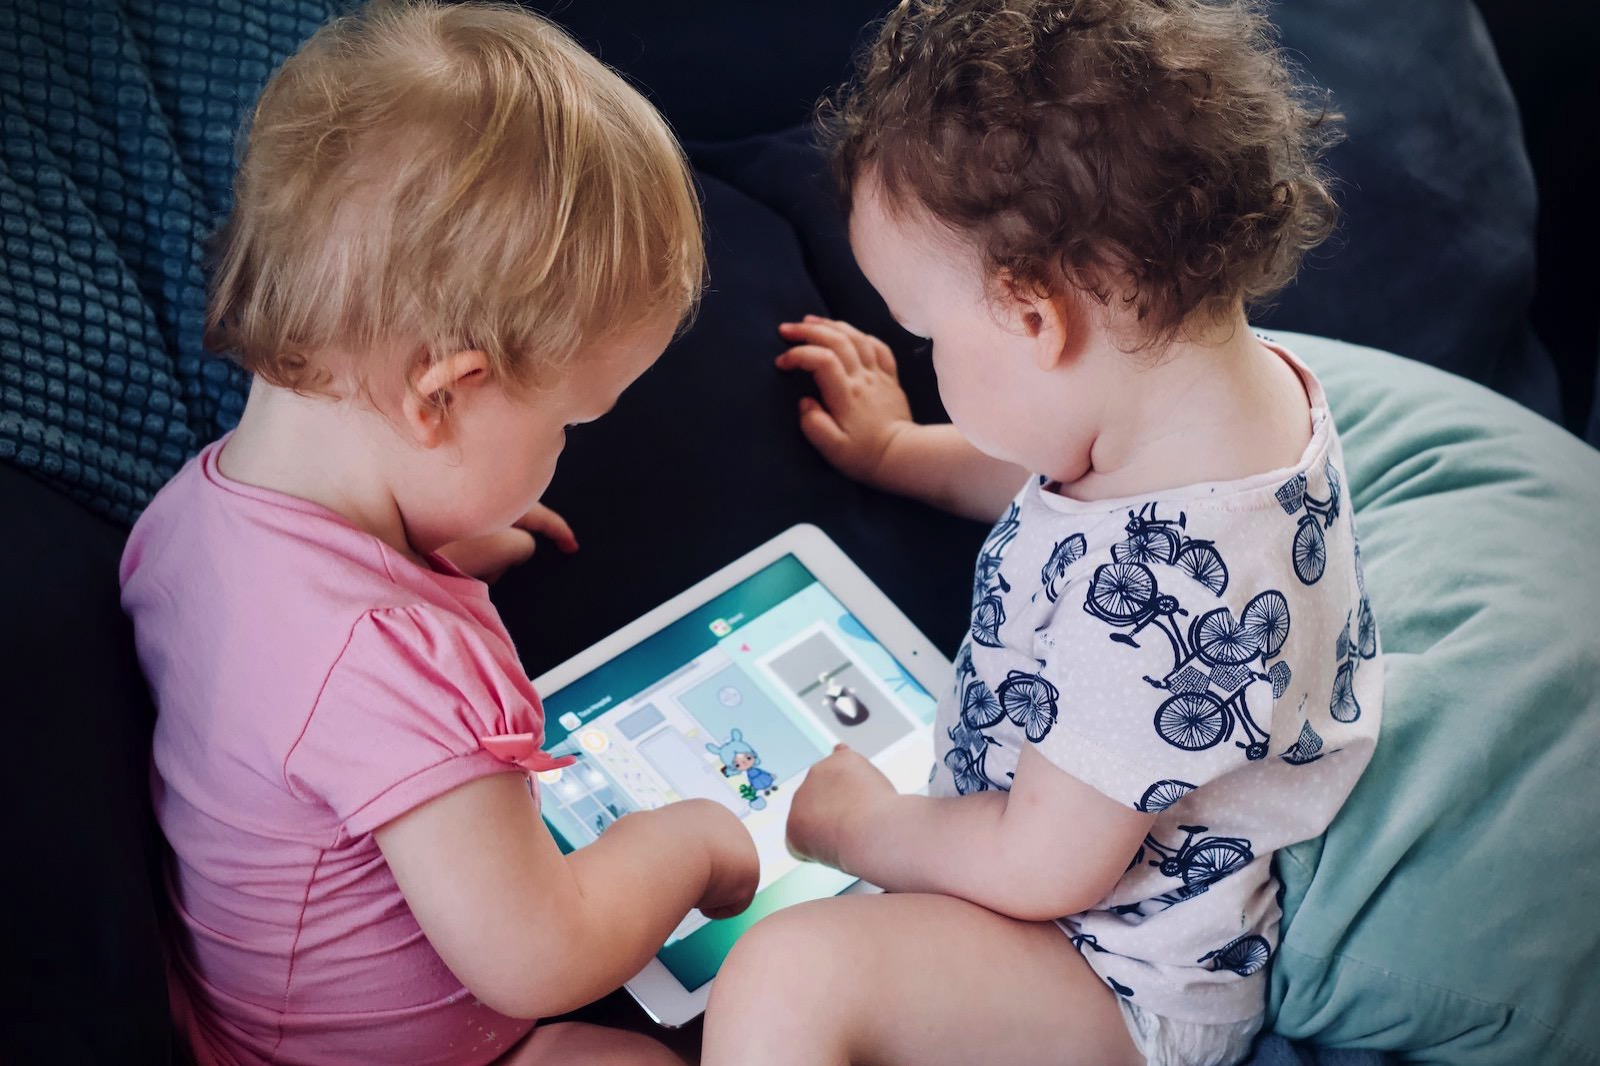 Jelleke vanooteghem 386022 unsplash kids playing with ipad